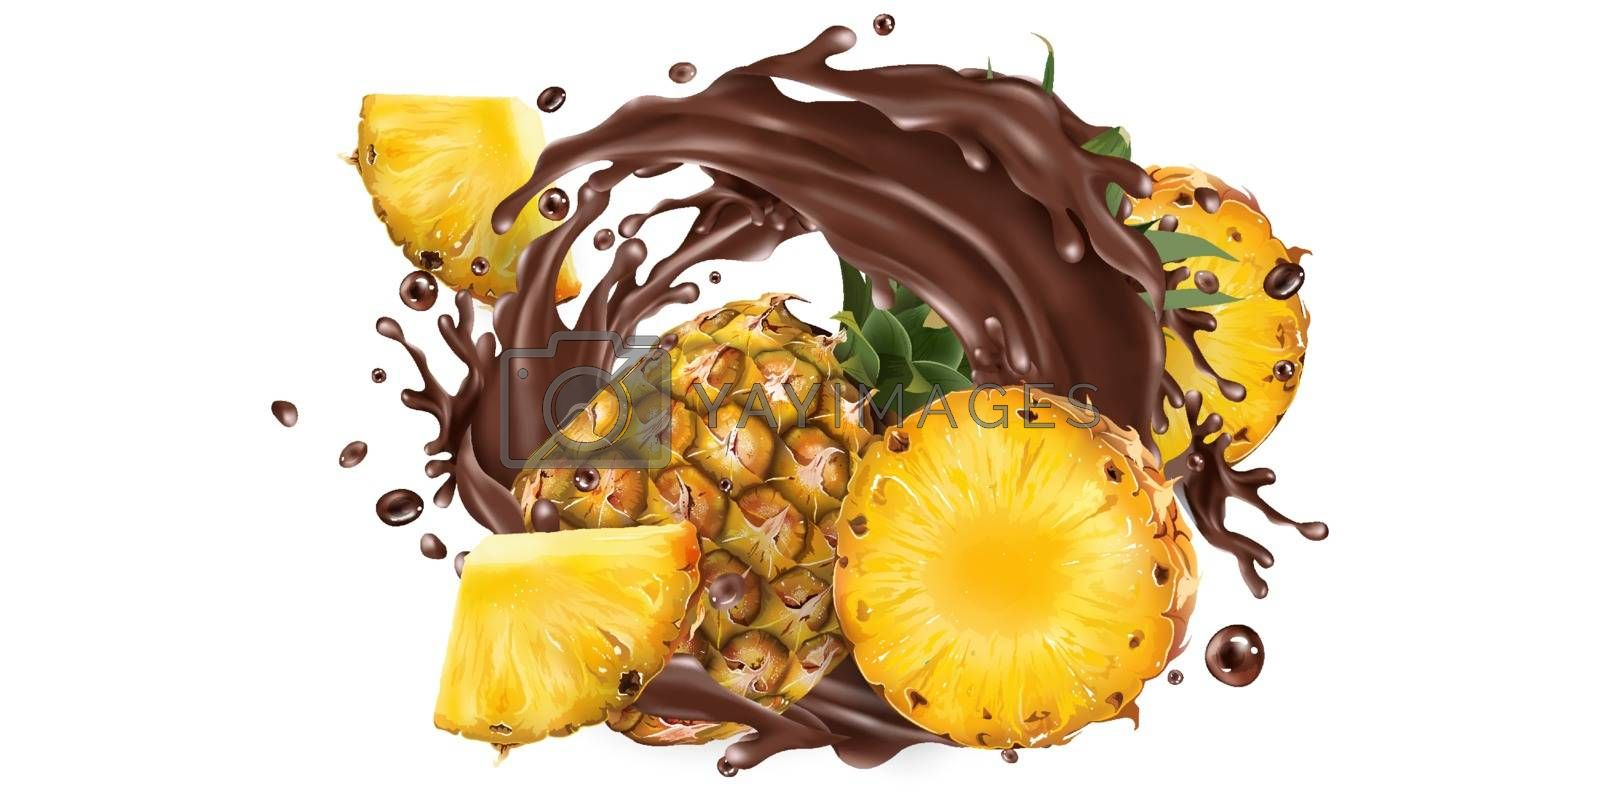 Fresh pineapples and a splash of liquid chocolate on a white background. Realistic vector illustration.